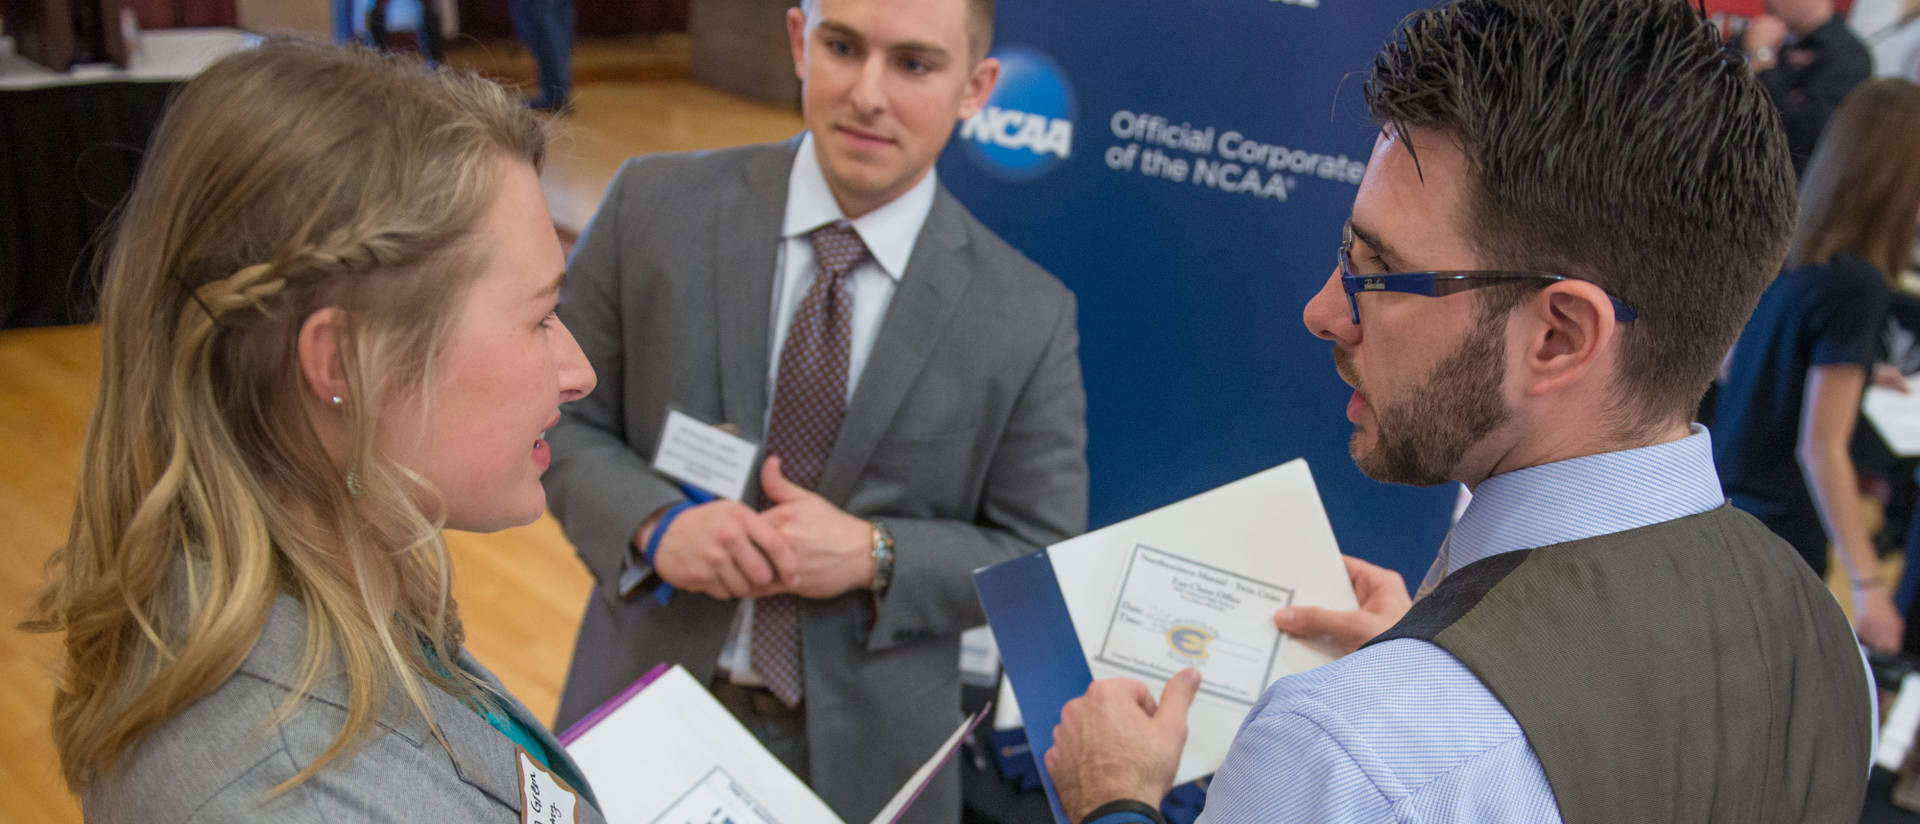 Students, alumni and employers participating in a Career Fair in W. R. Davies Center on the UW-Eau Claire campus.